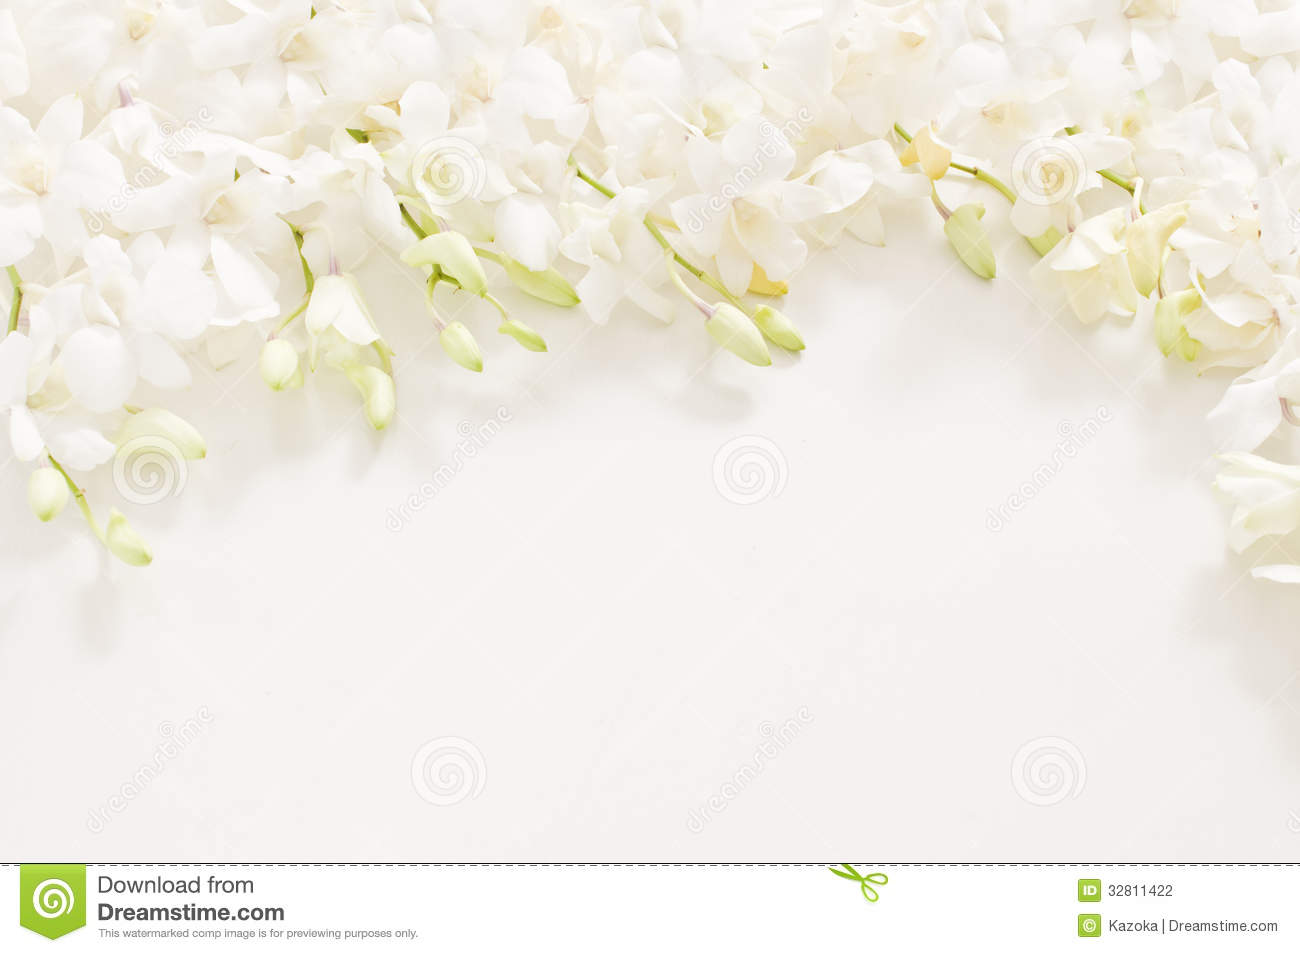 Funeral Background Pictures 1300x953